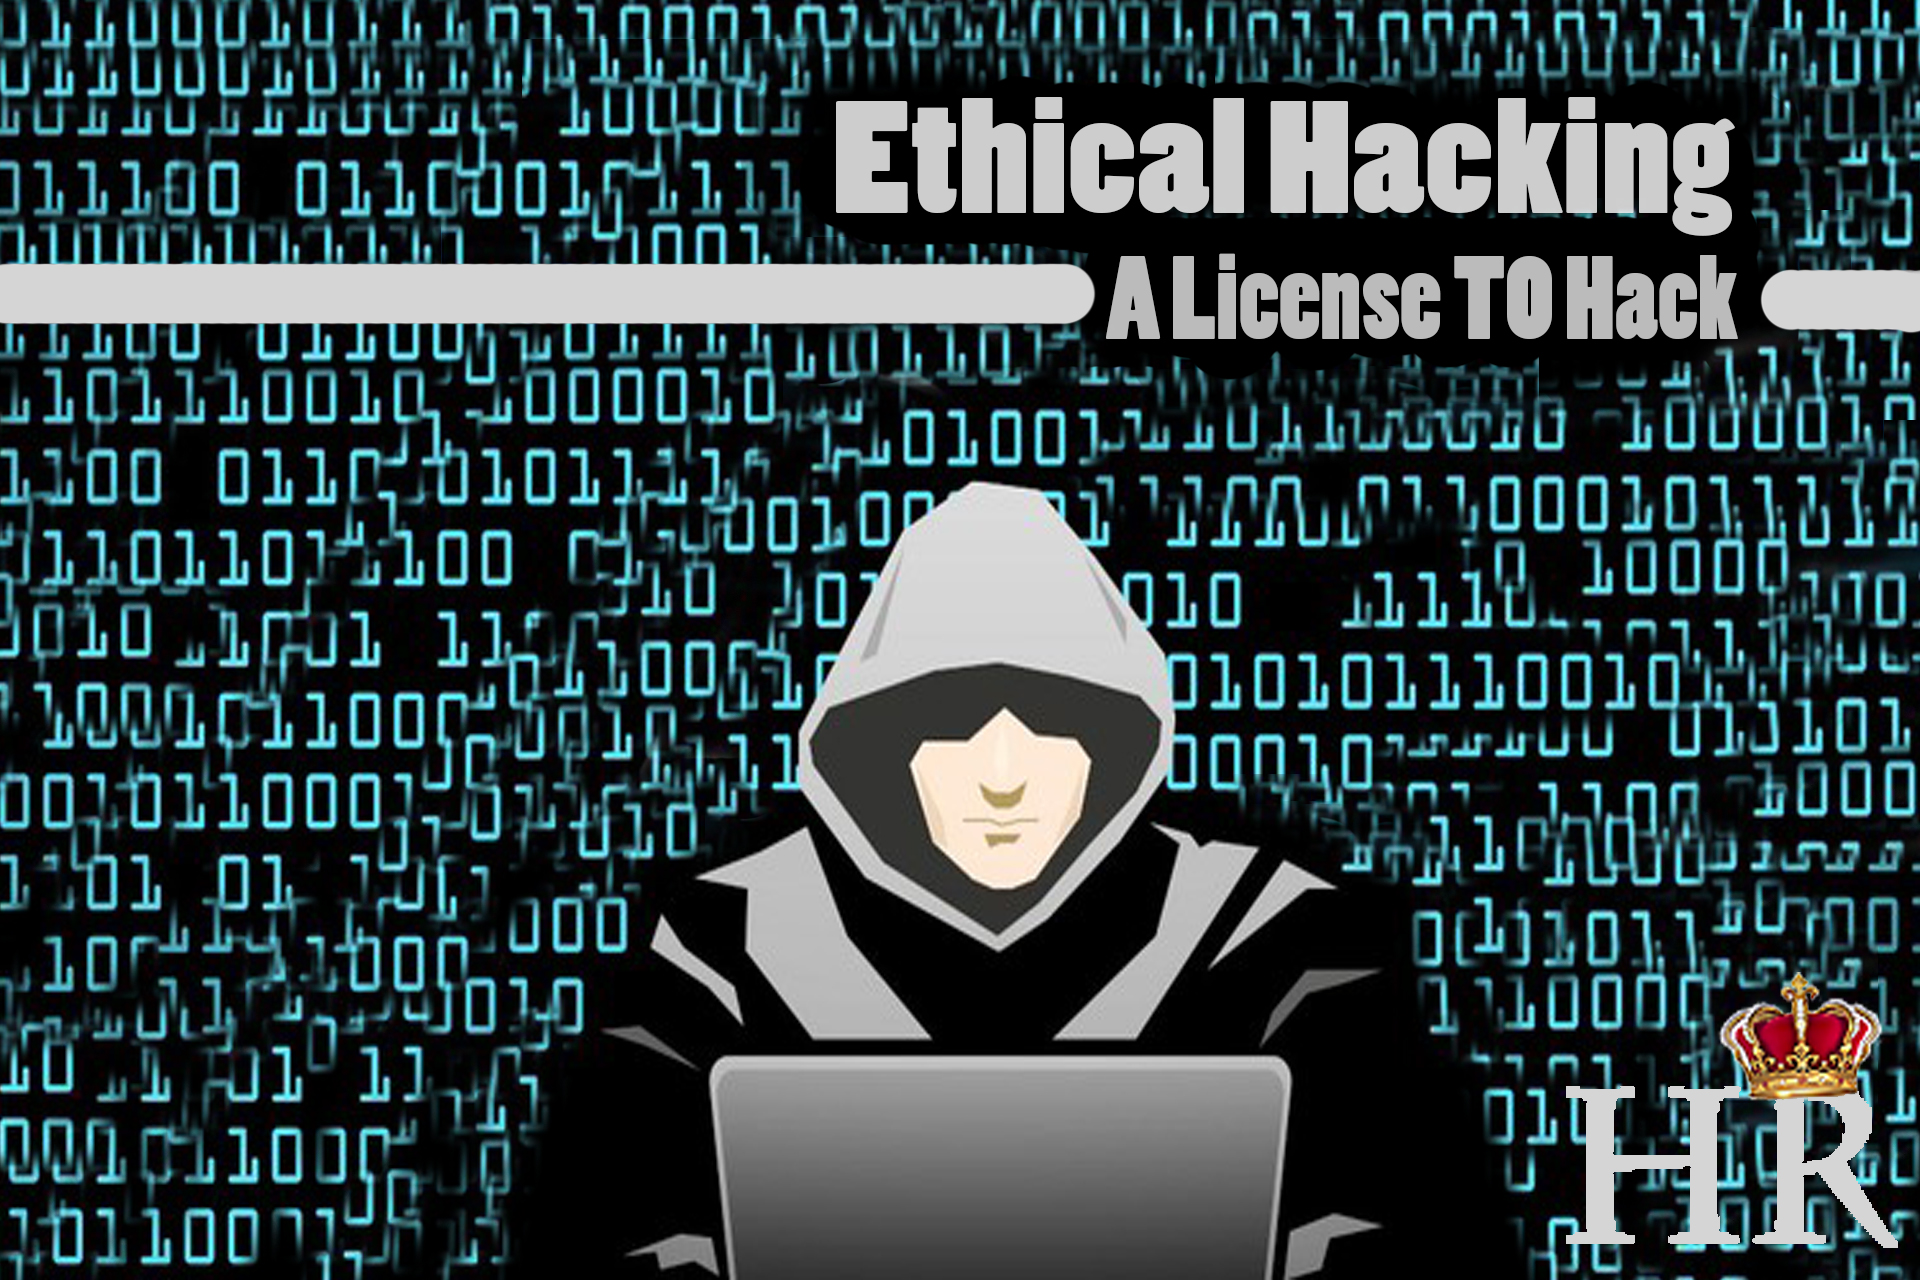 How to prepare for ethical hacking!